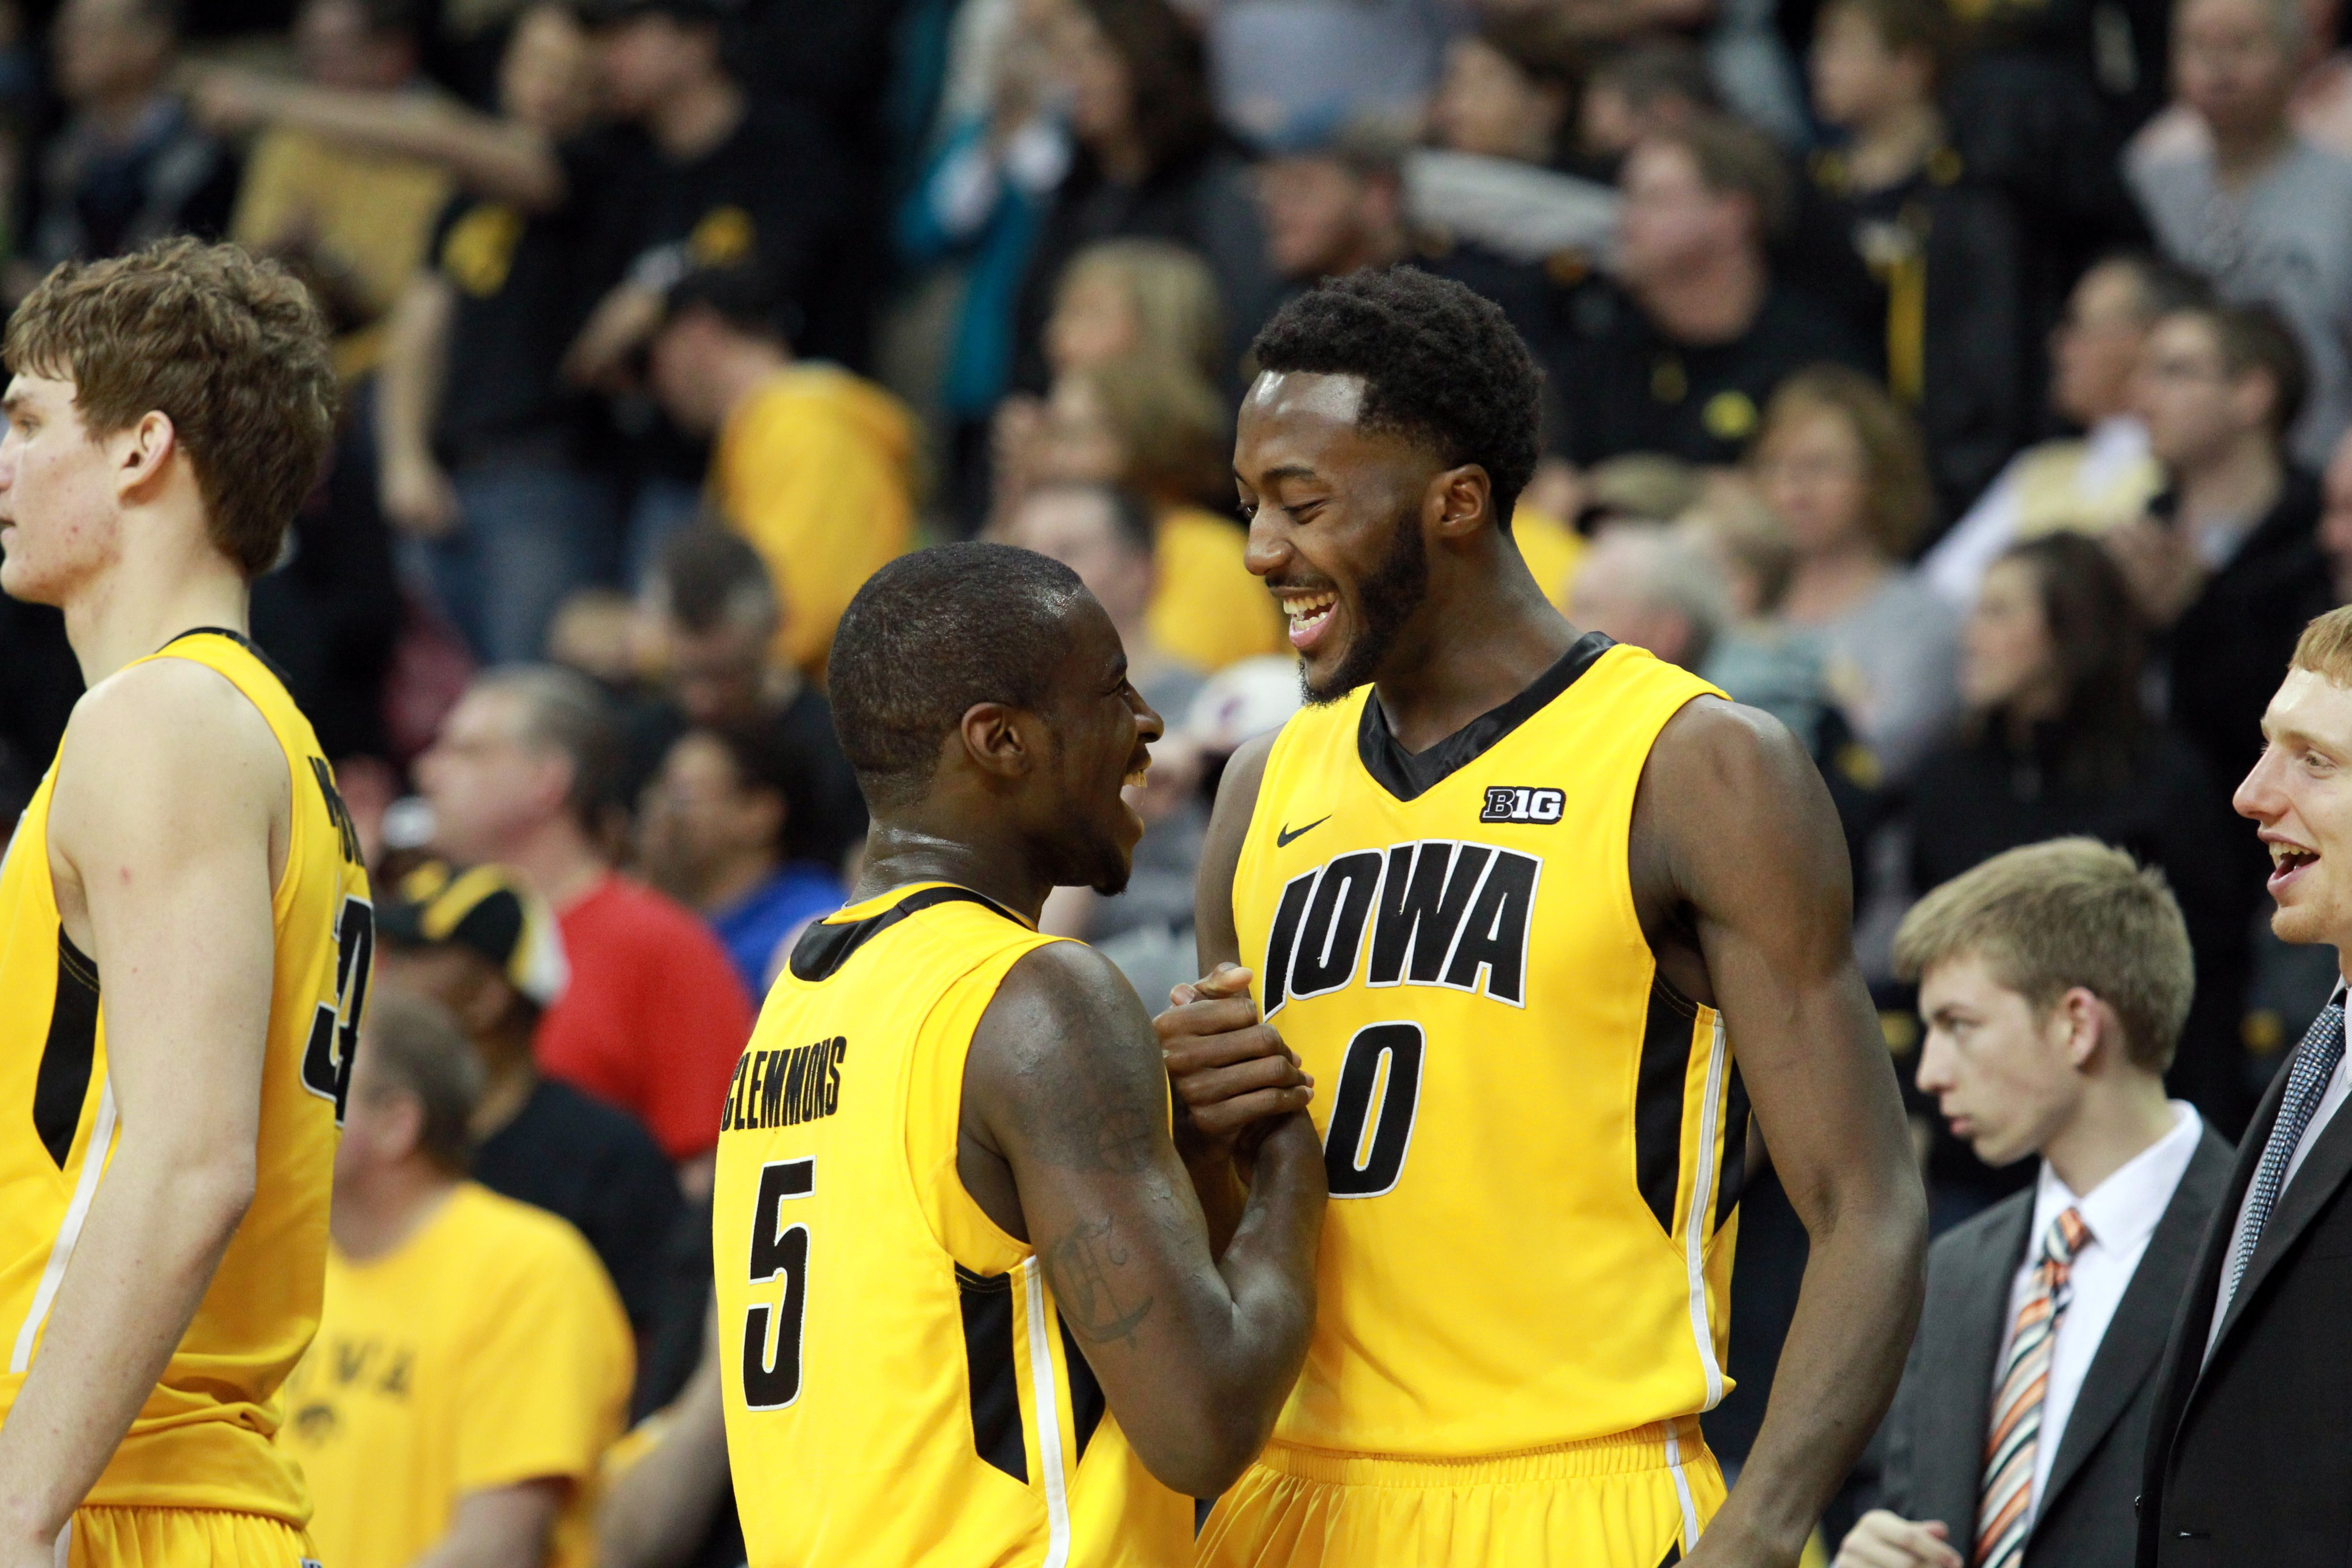 Clemmons and Olaseni will be part of an eight-man scramble for minutes off the bench